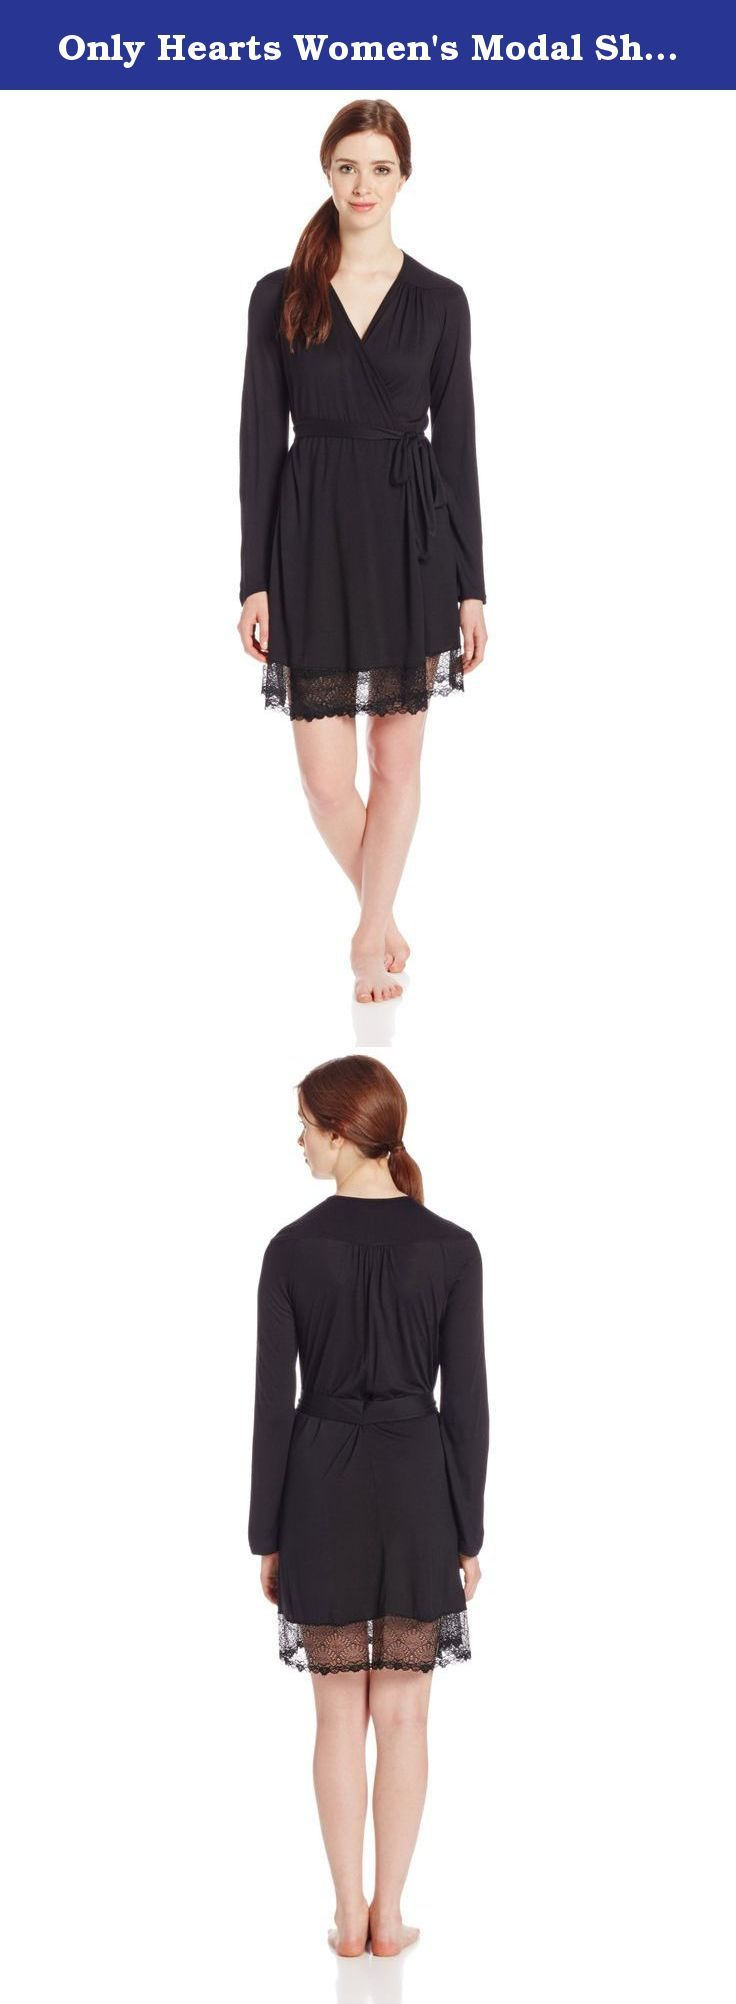 Only Hearts Women's Modal Short Robe with Lace Hem, Black, Small. Venice short robe with lace hem.